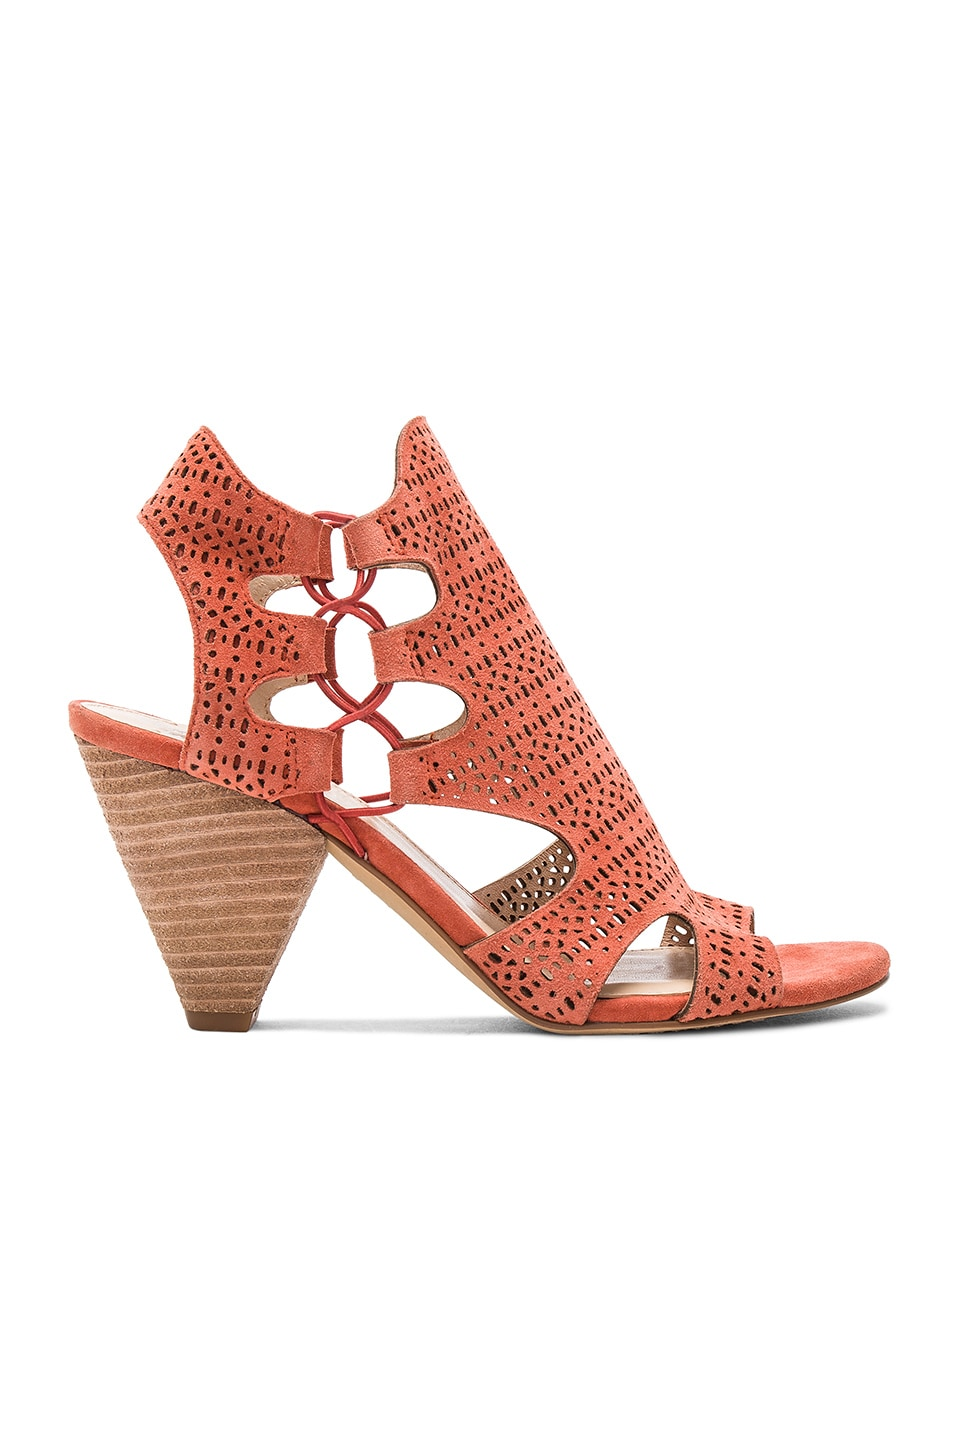 Photo of Eadon Heel by Vince Camuto shoes